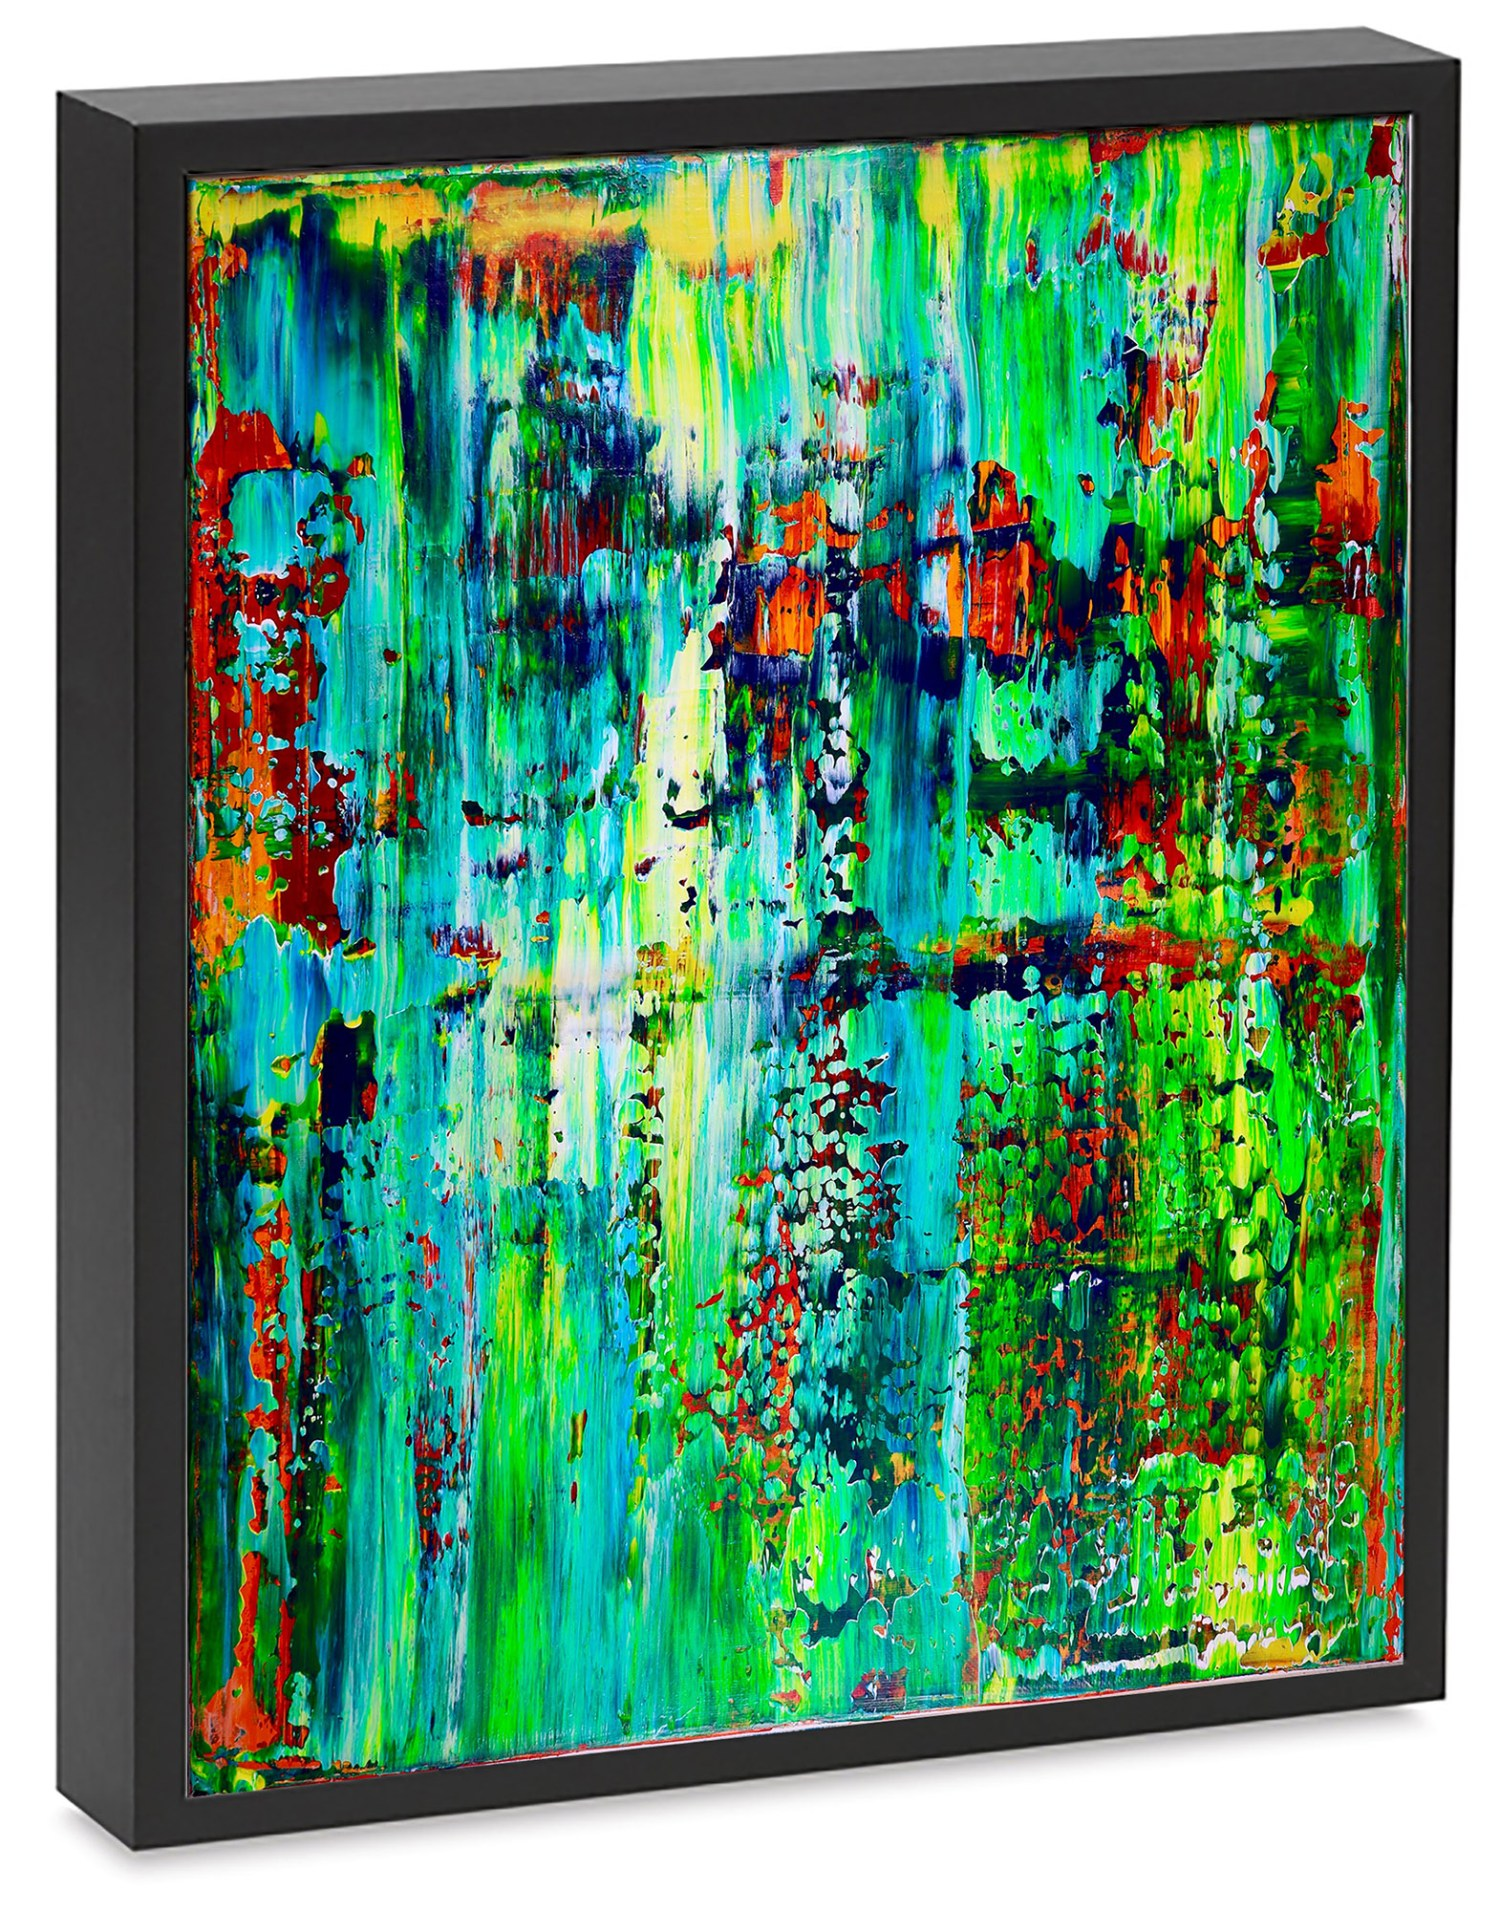 SOLD Artwork - Enchanted Spectra 2 by abstract painter Nestor Toro